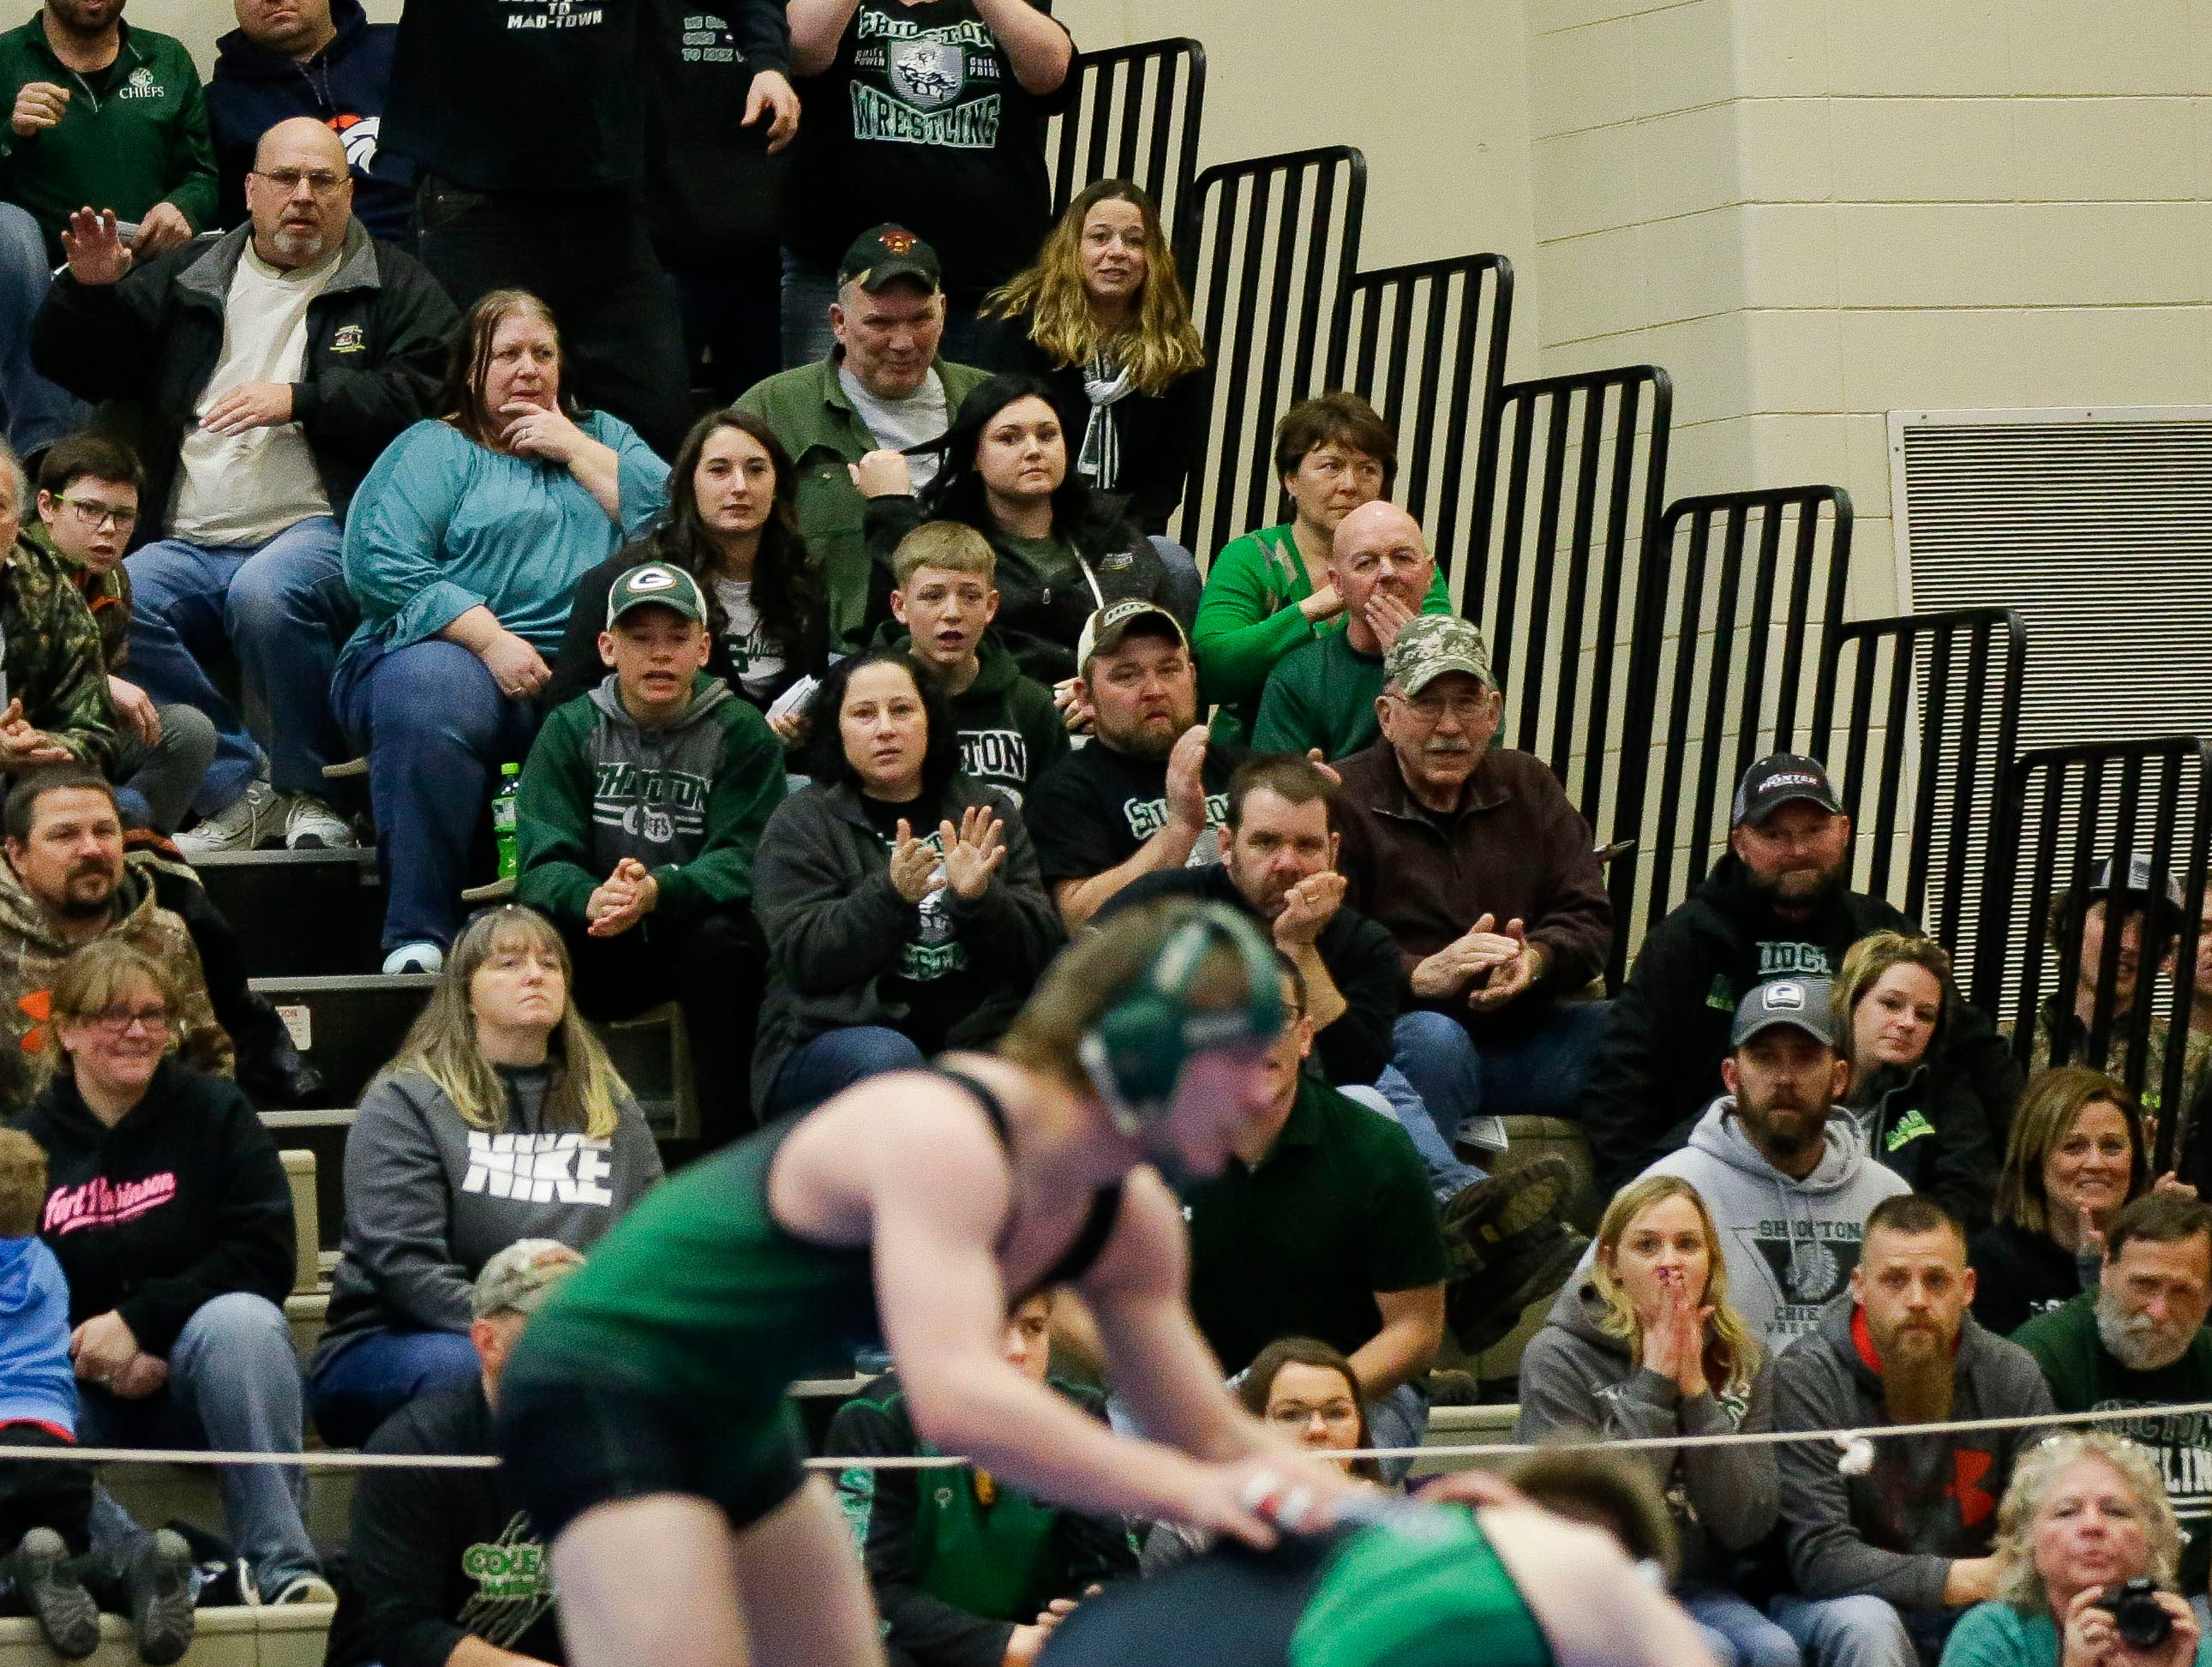 Shiocton fans cheer for Billy Reif in a 160-pound semifinal match on Saturday, February 16, 2019, during a Division 3 sectional meet at Shawano High School in Shawano, Wis.